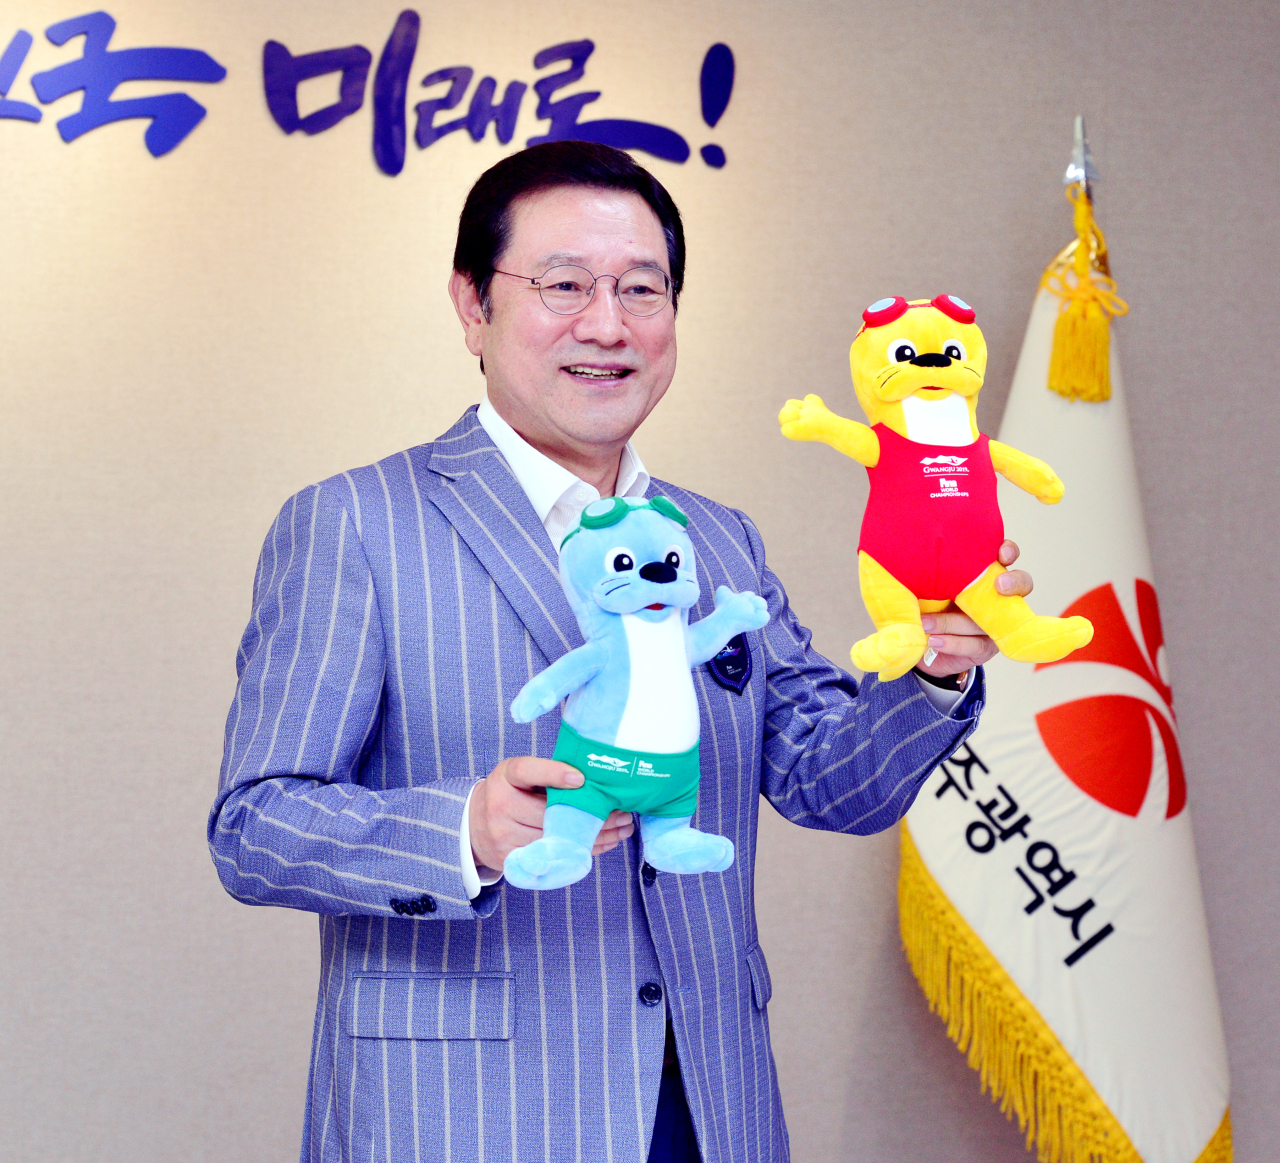 Gwangju Mayor Lee Yong-sup poses with mascots for the 18th FINA World Championships Gwangju 2019 before an interview with The Korea Herald at the Gwangju Metropolitan City Hall on Tuesday. (Park Hyun-koo/The Korea Herald)